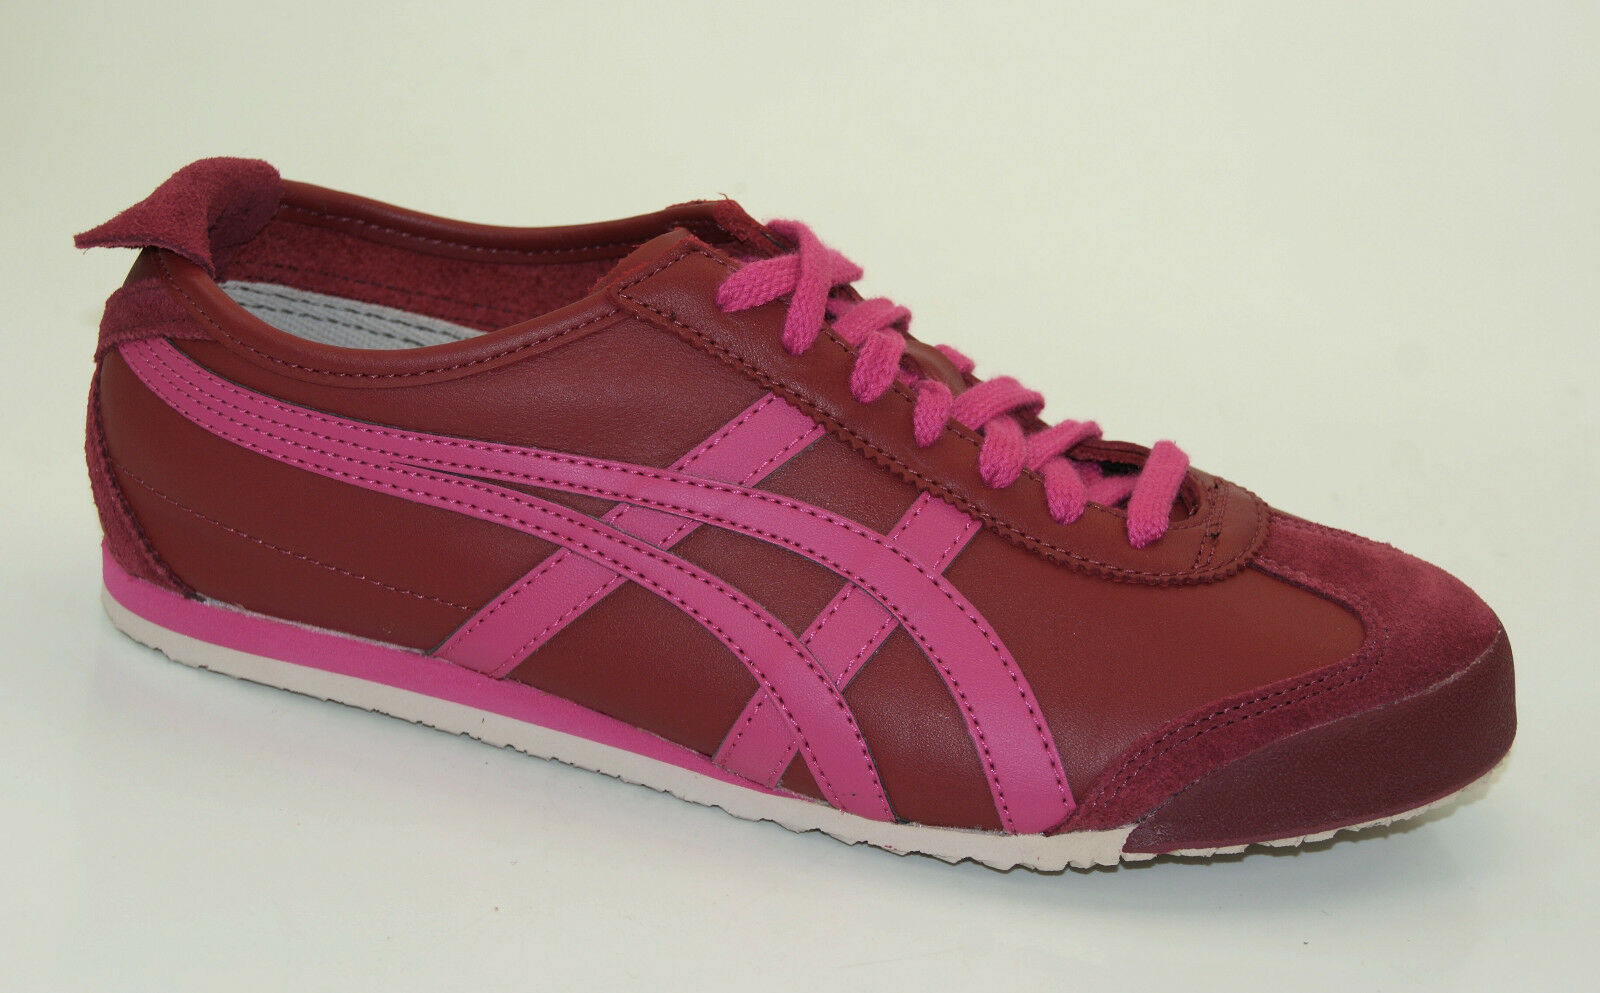 Asics Onitsuka Tiger Mexico 66 Rétro Baskets Loisirs Chaussures Femmes hl474-2518